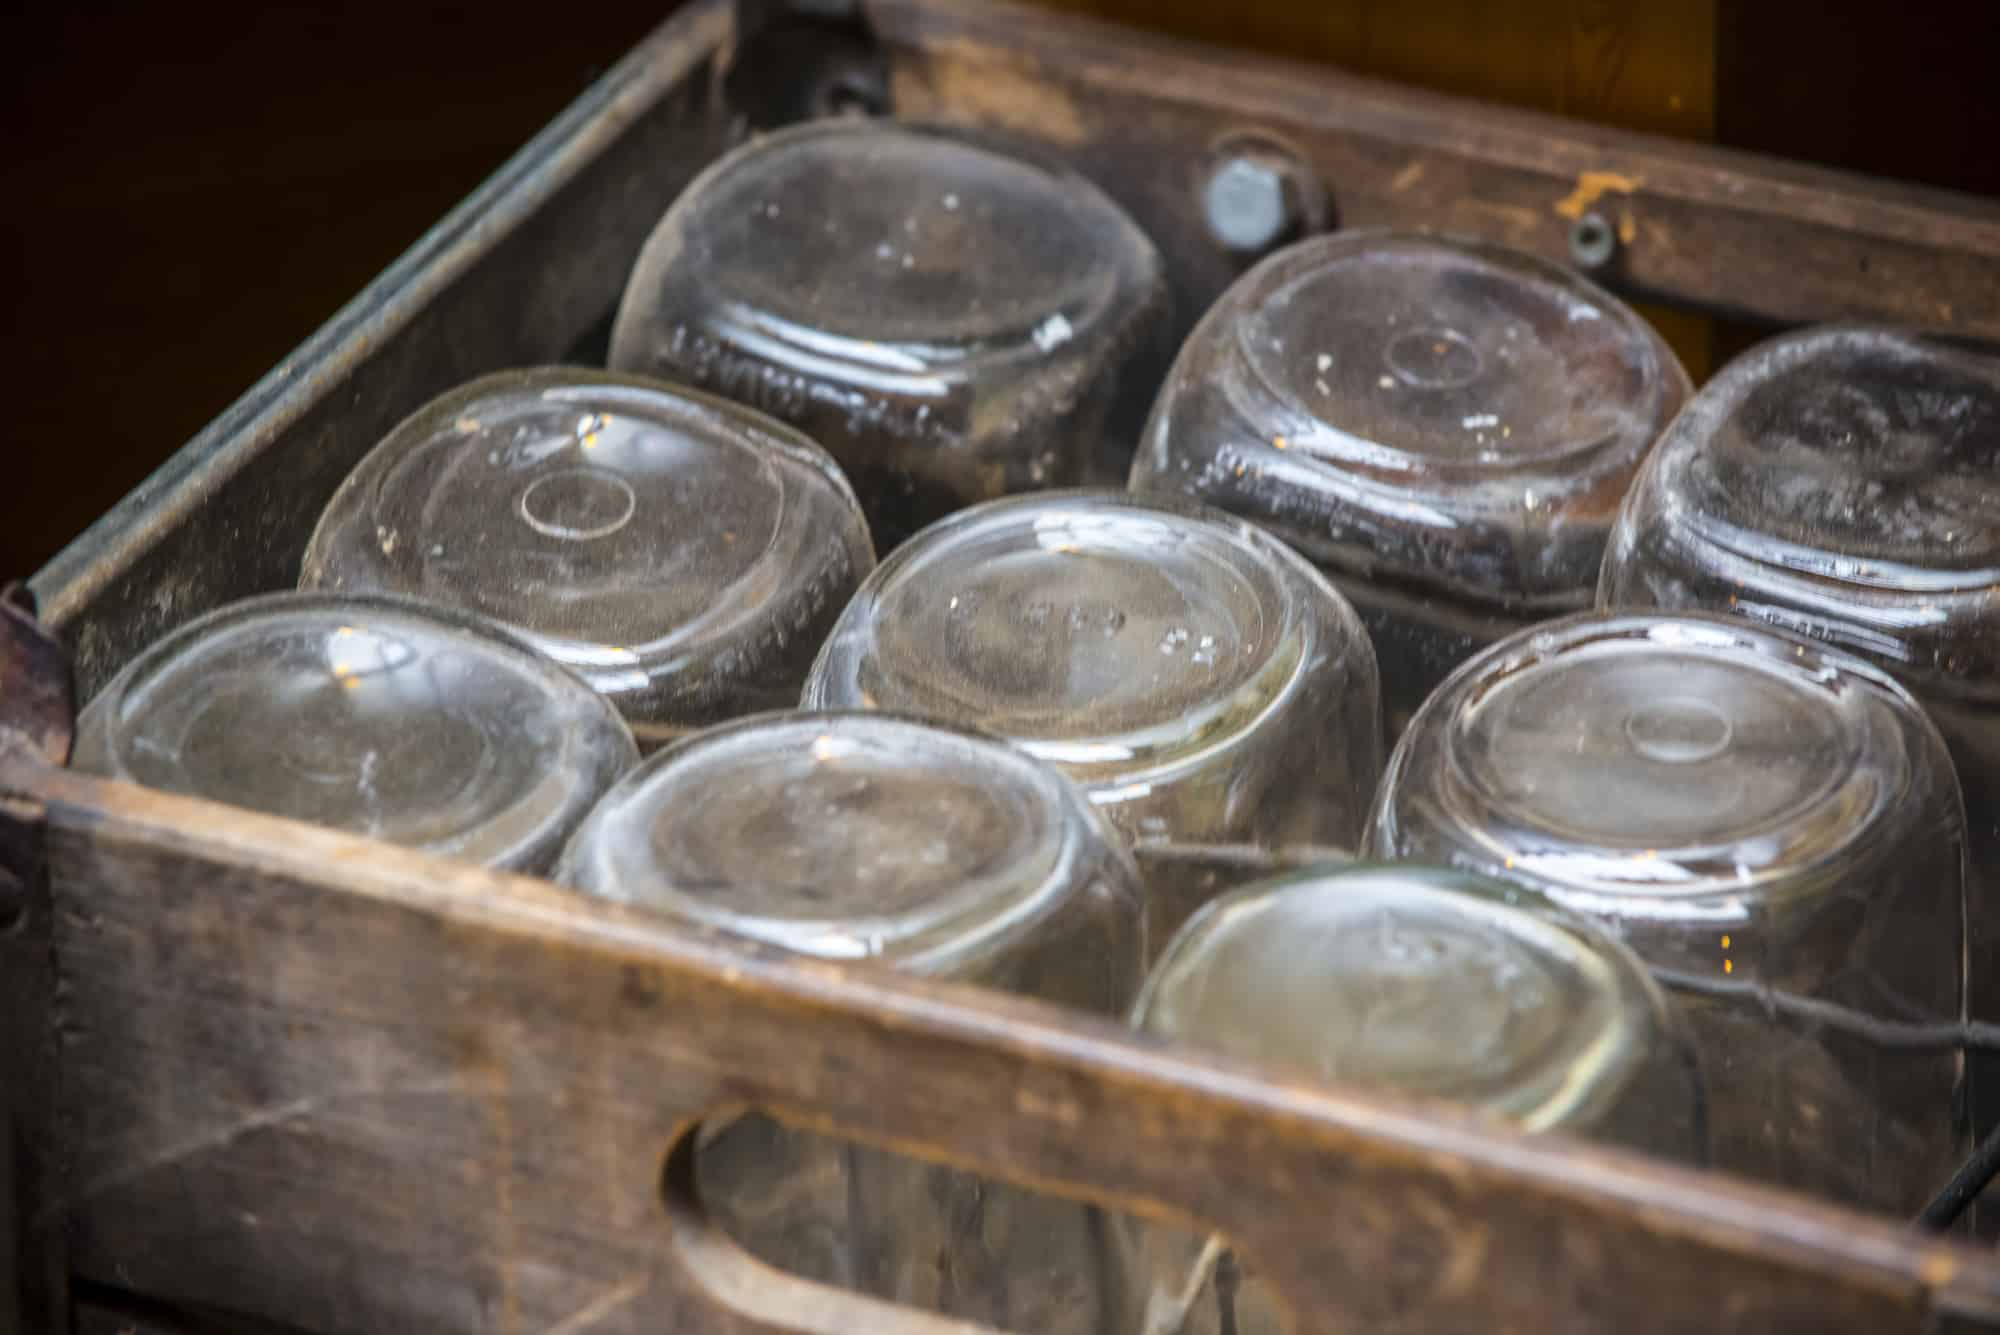 Rustic style wooden box with old fashion glass jars